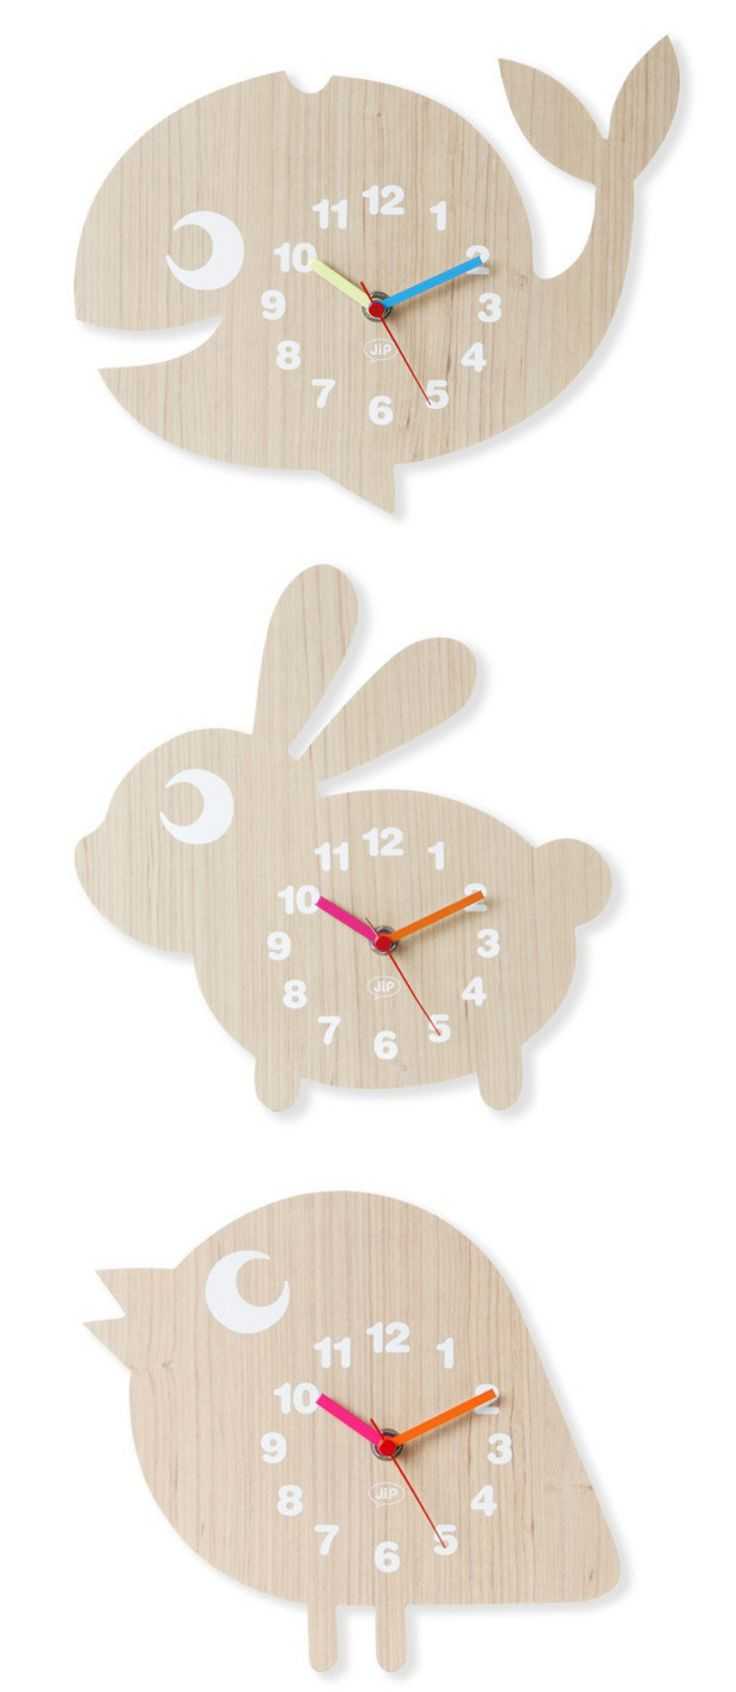 FUN ANIMAL WOODEN WALL CLOCK